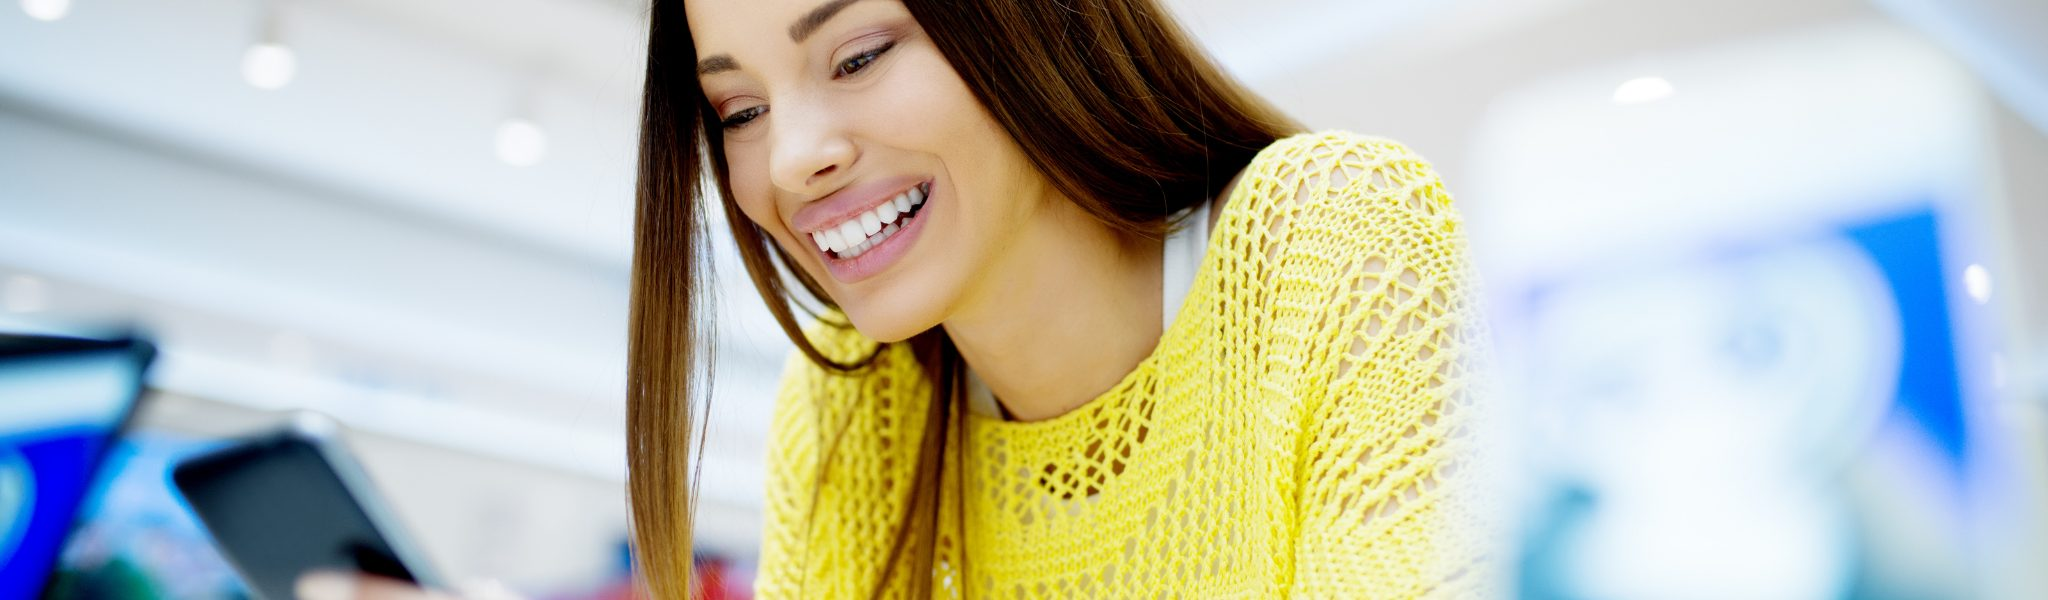 Woman smiling after memorable customer experience